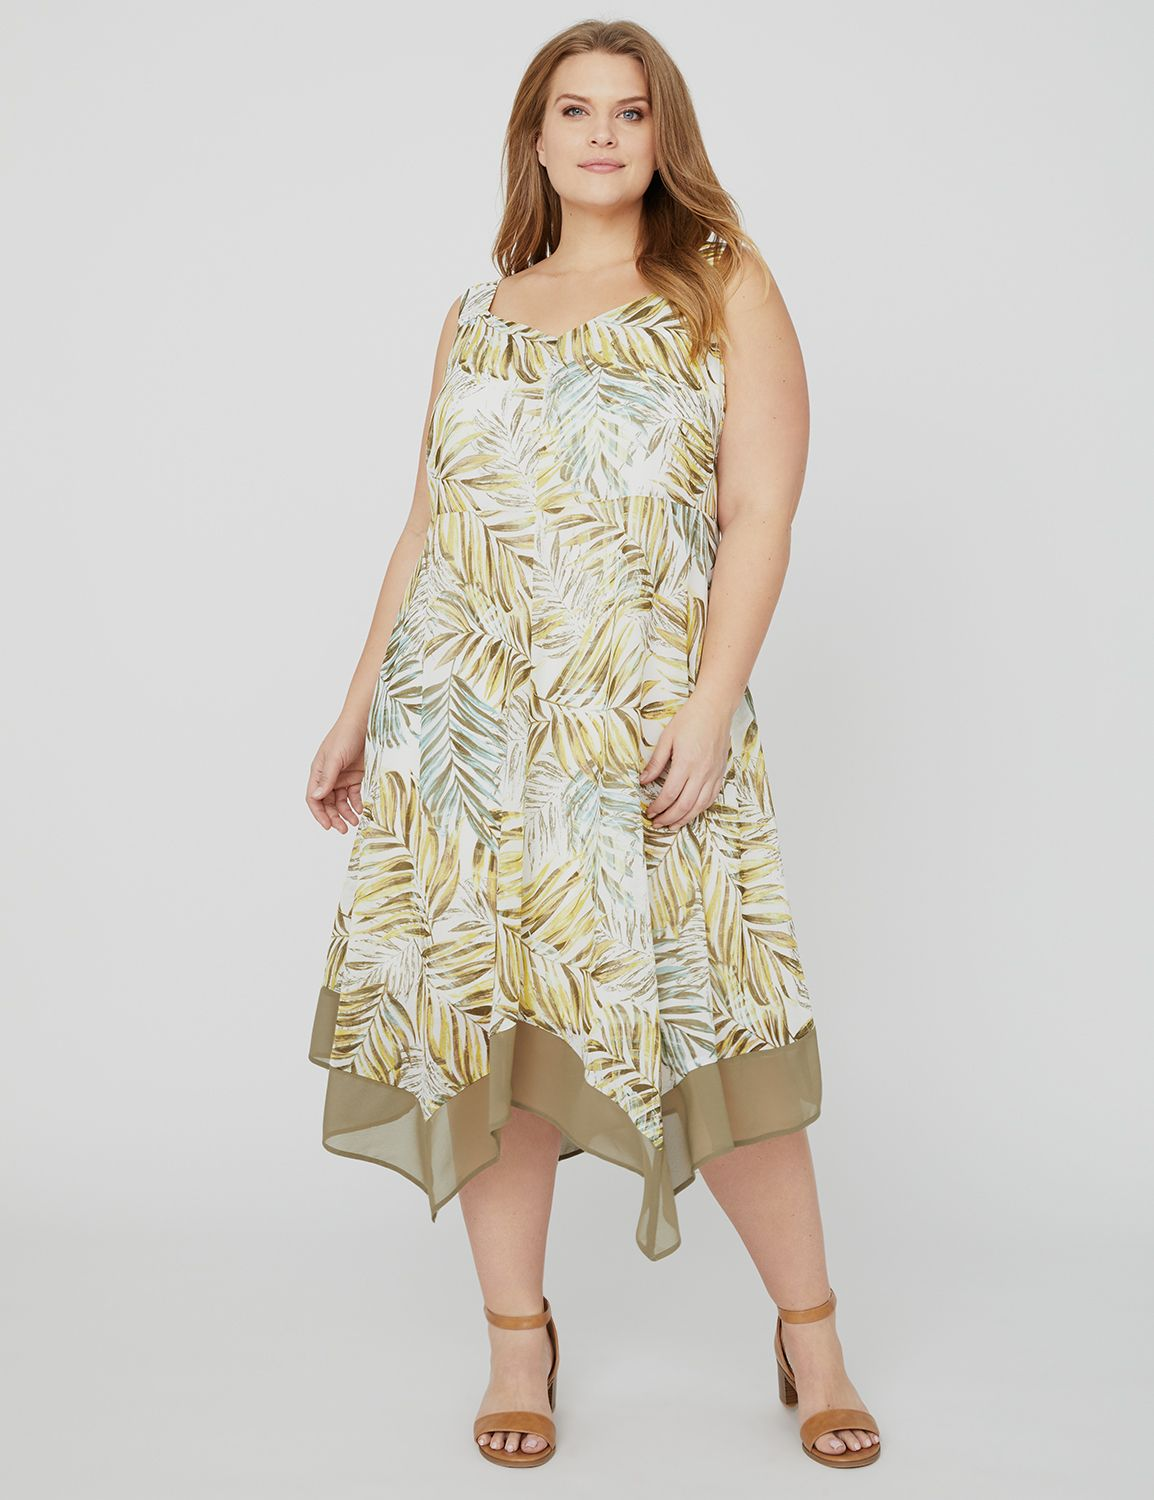 Greenwood Imprint Dress with Hankerchief Hem 1089938 Printed HANKY HEM DRESS wit MP-300102449